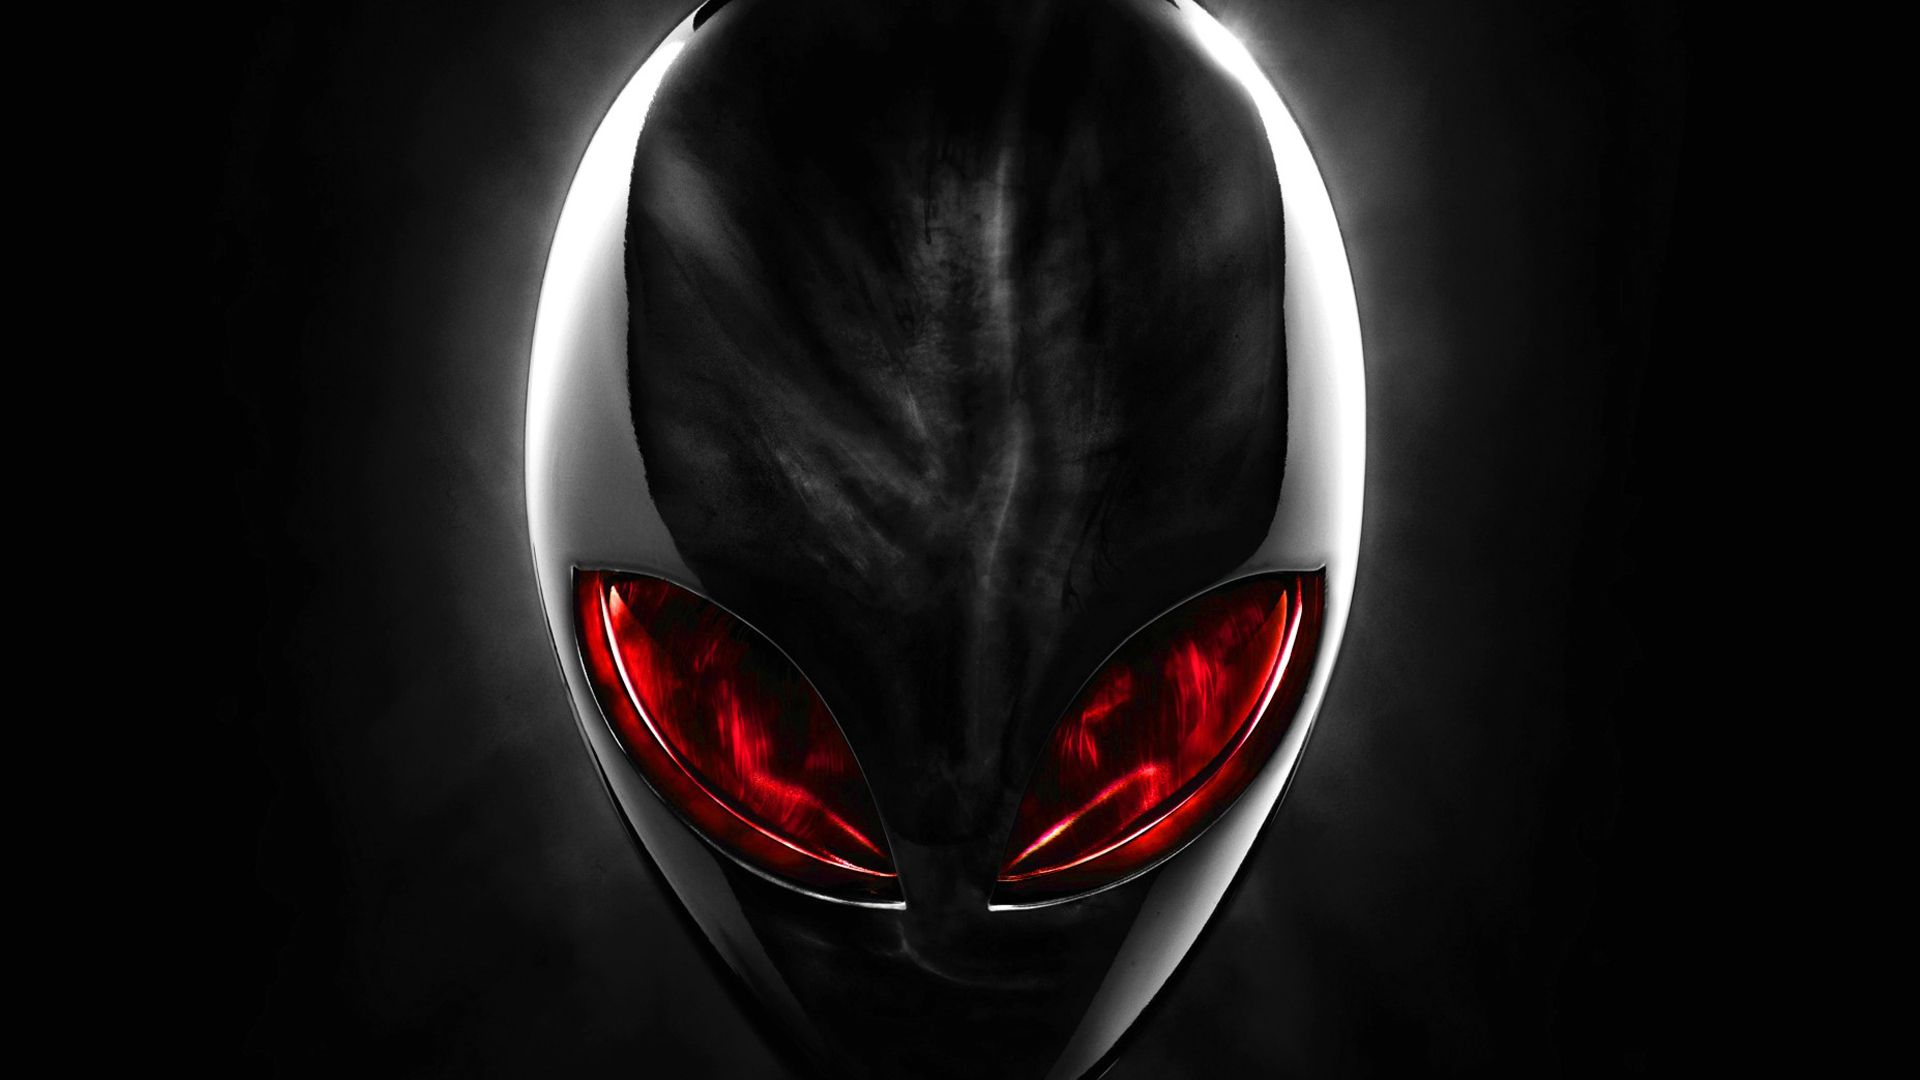 Alien Wallpapers HD Wallpapers Huawei wallpapers, Ios